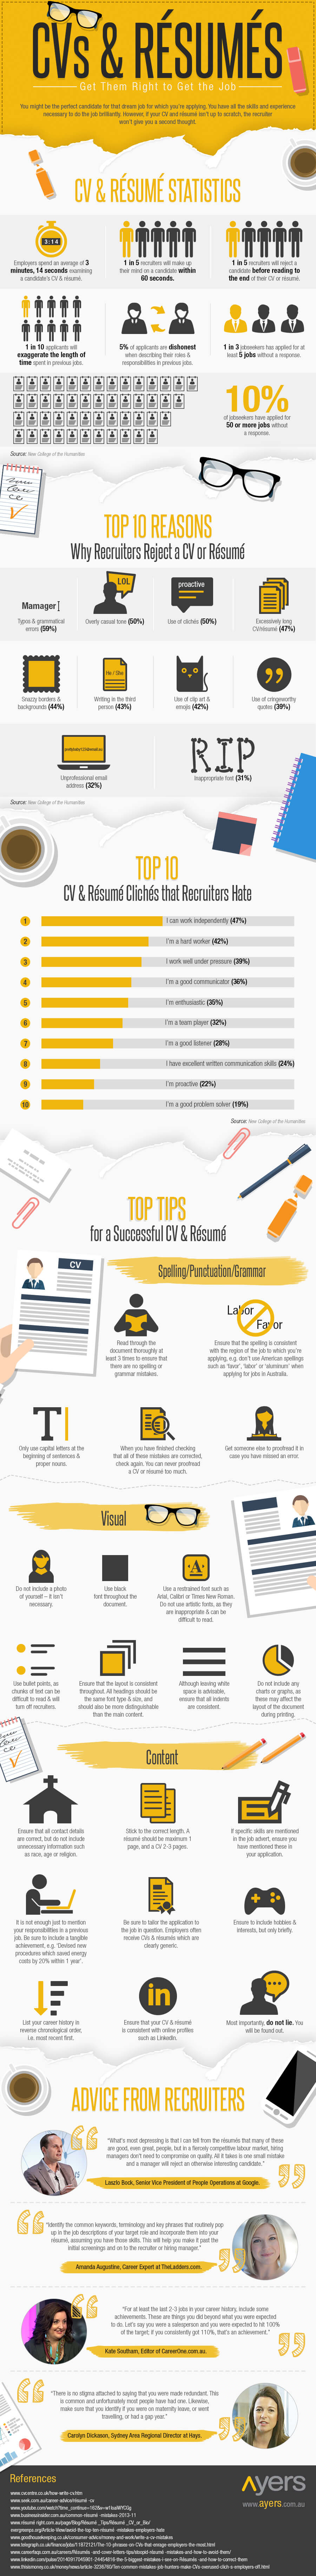 CVs-Resumes-Get-Them-Right-to-Get-the-Job-infographic